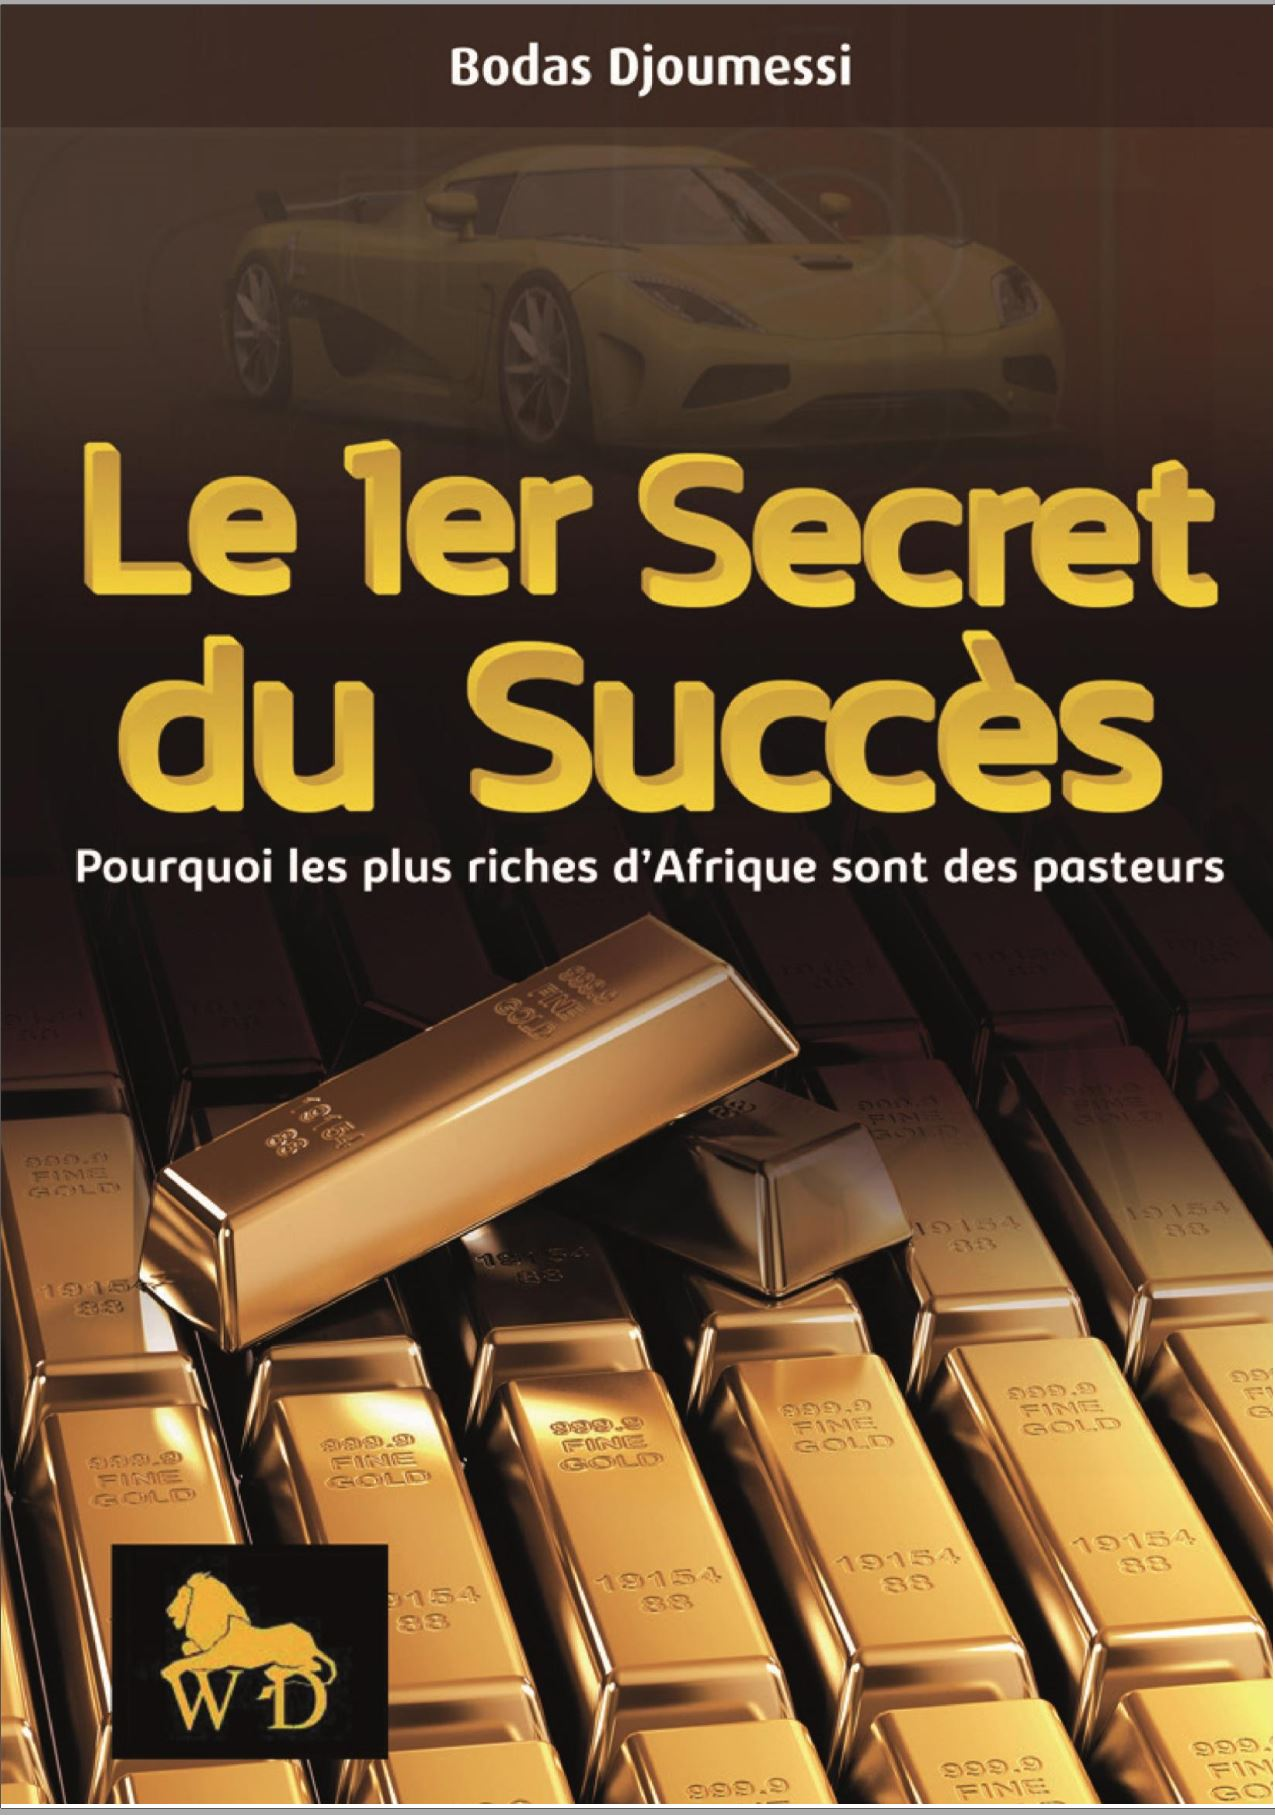 1er secret du success